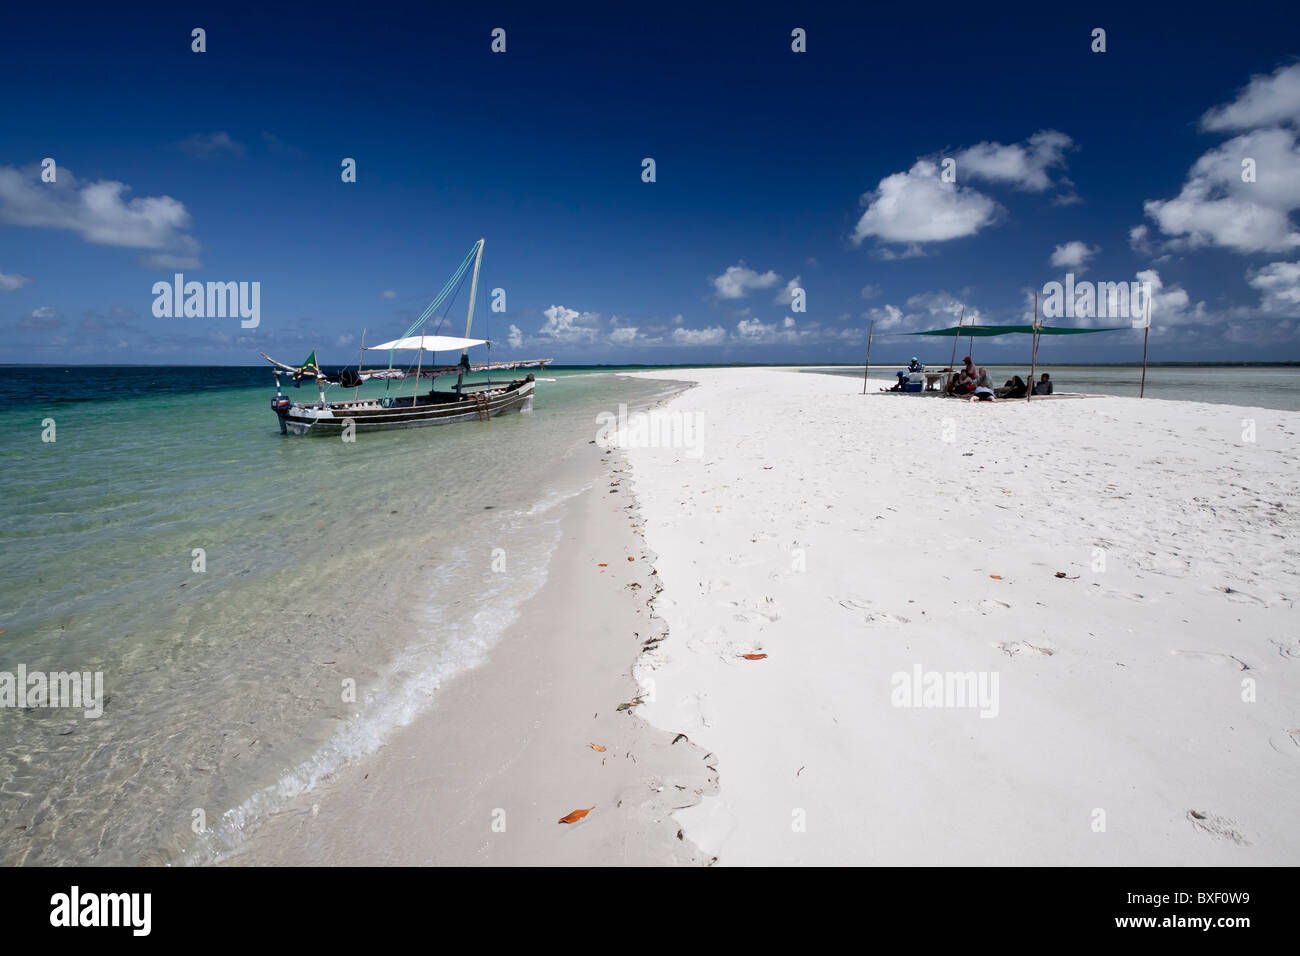 Barbecue on a deserted white sand bank in Chole bay - Stock Image